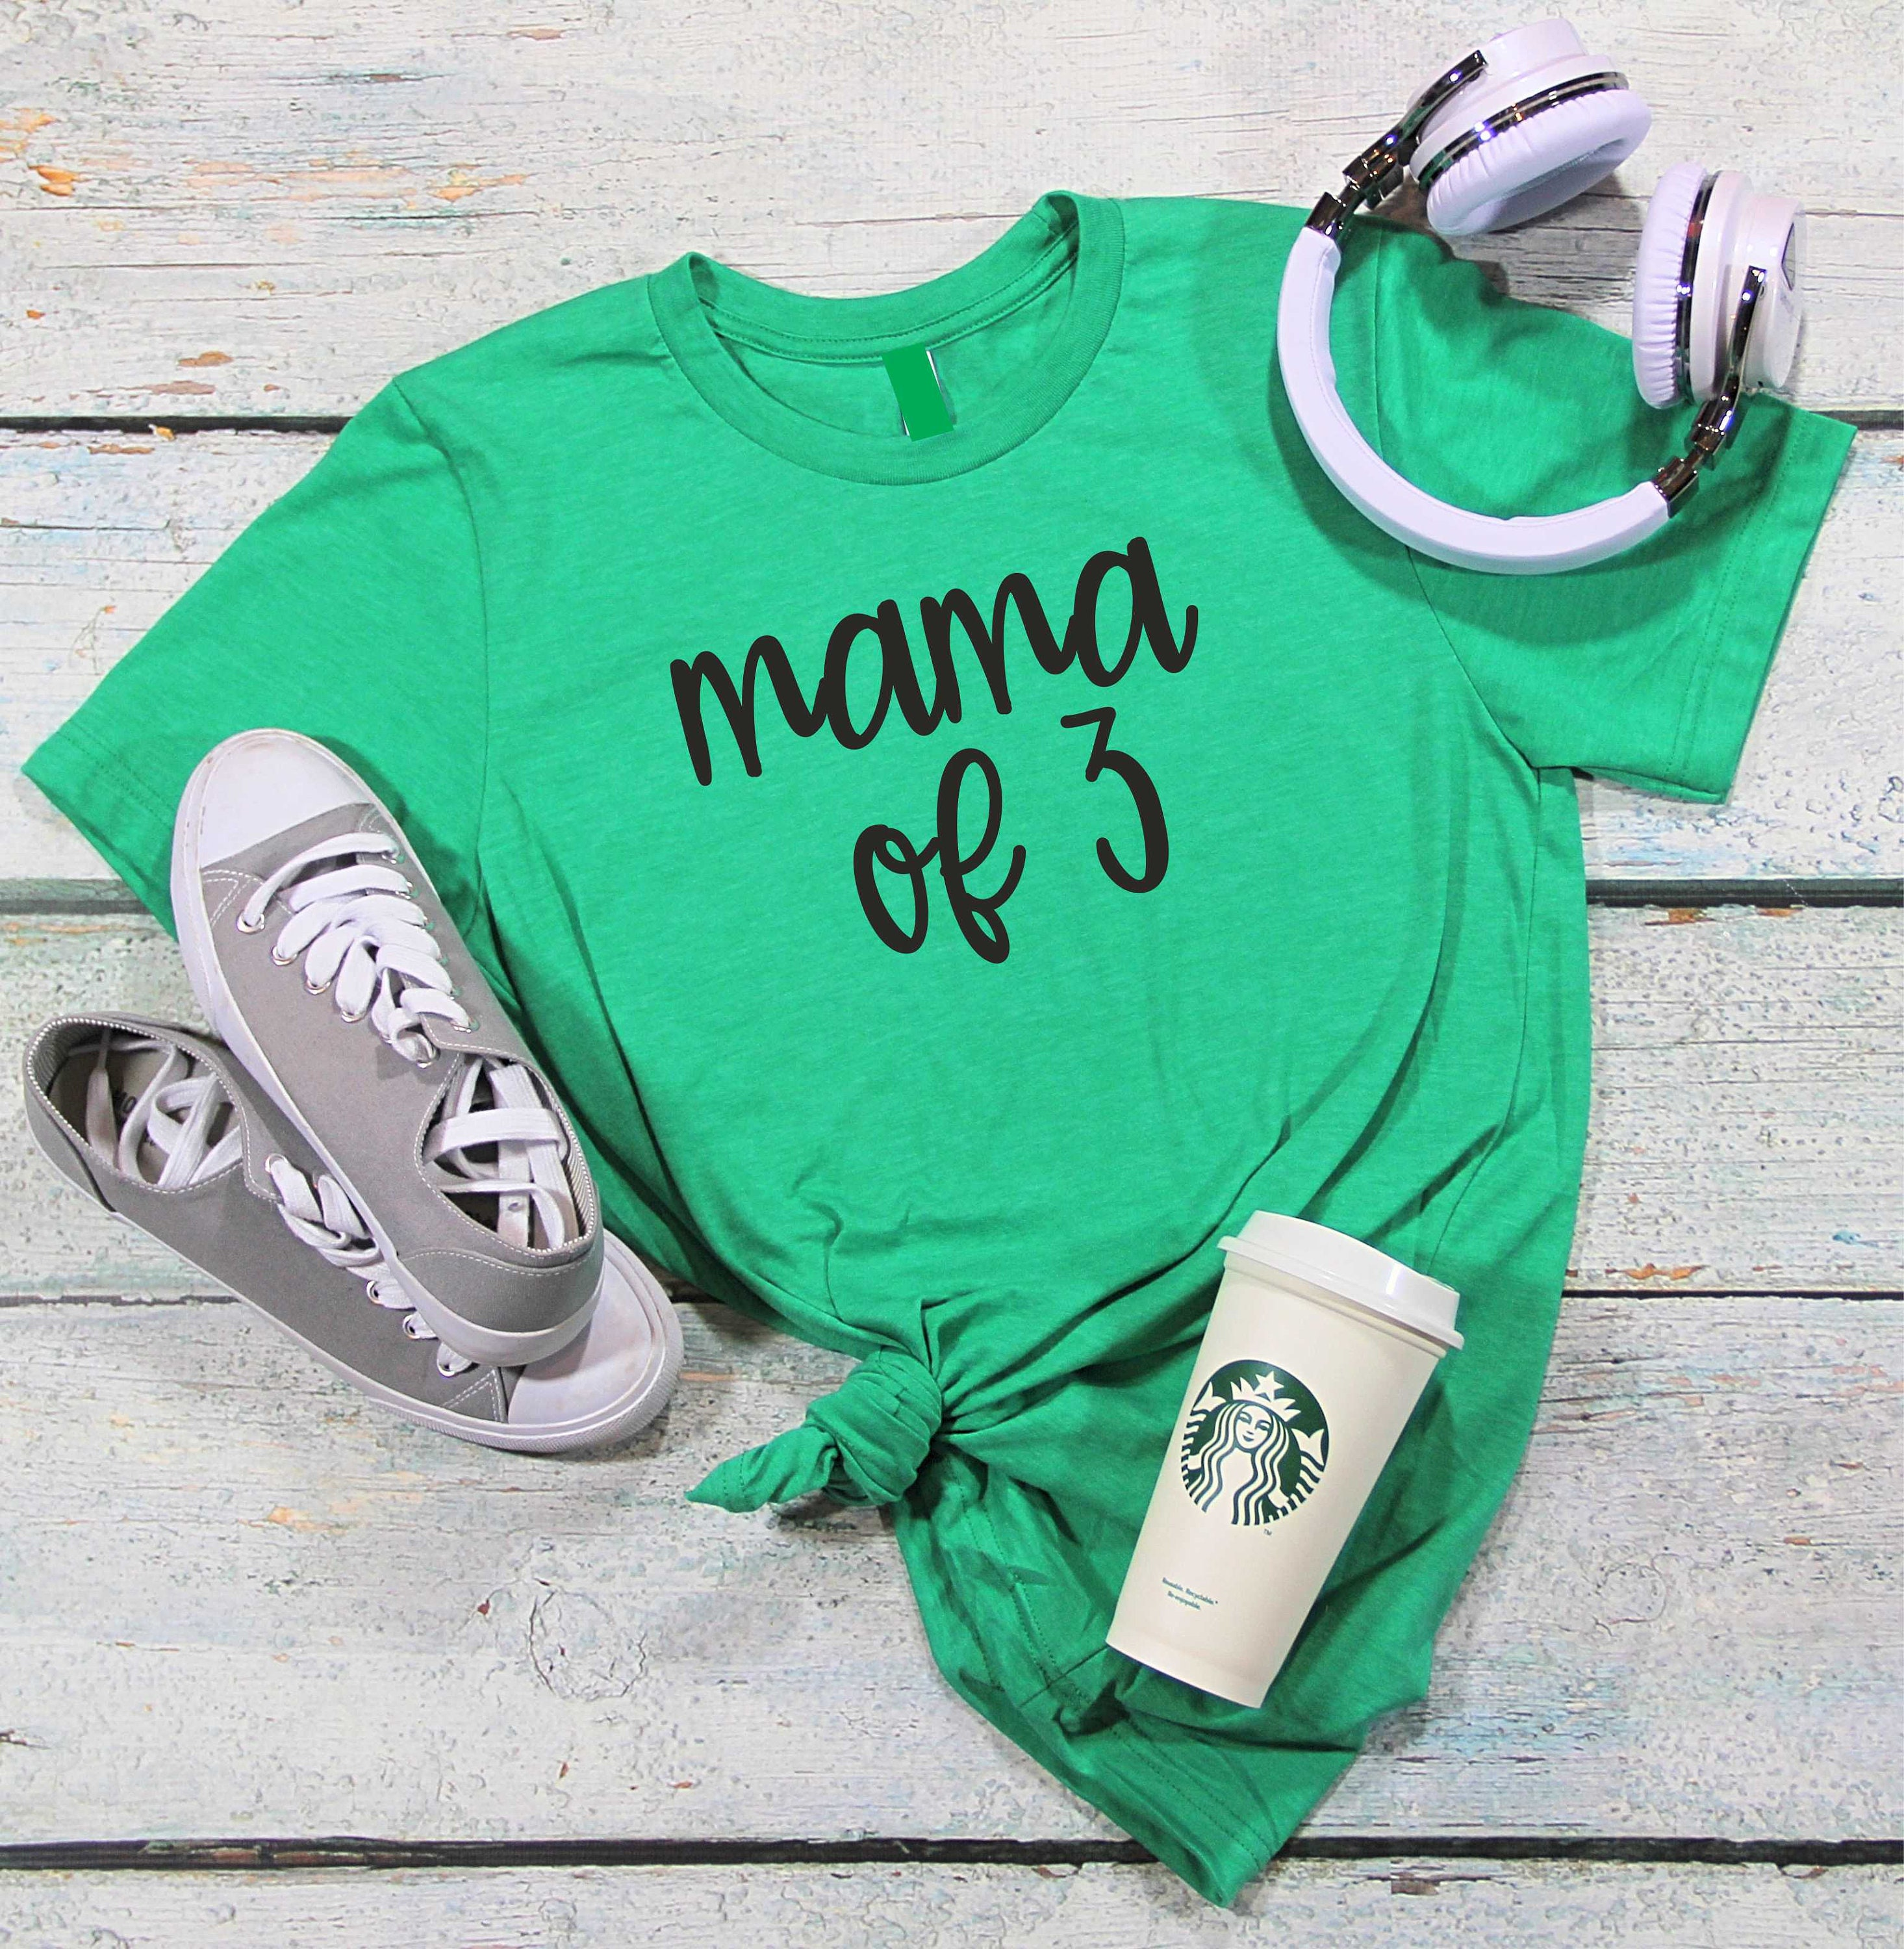 Cute Christmas Gift Ideas For Mom.Motherhood Shirt Mama Of 3 4 5 Gift For Mom Mothers Day